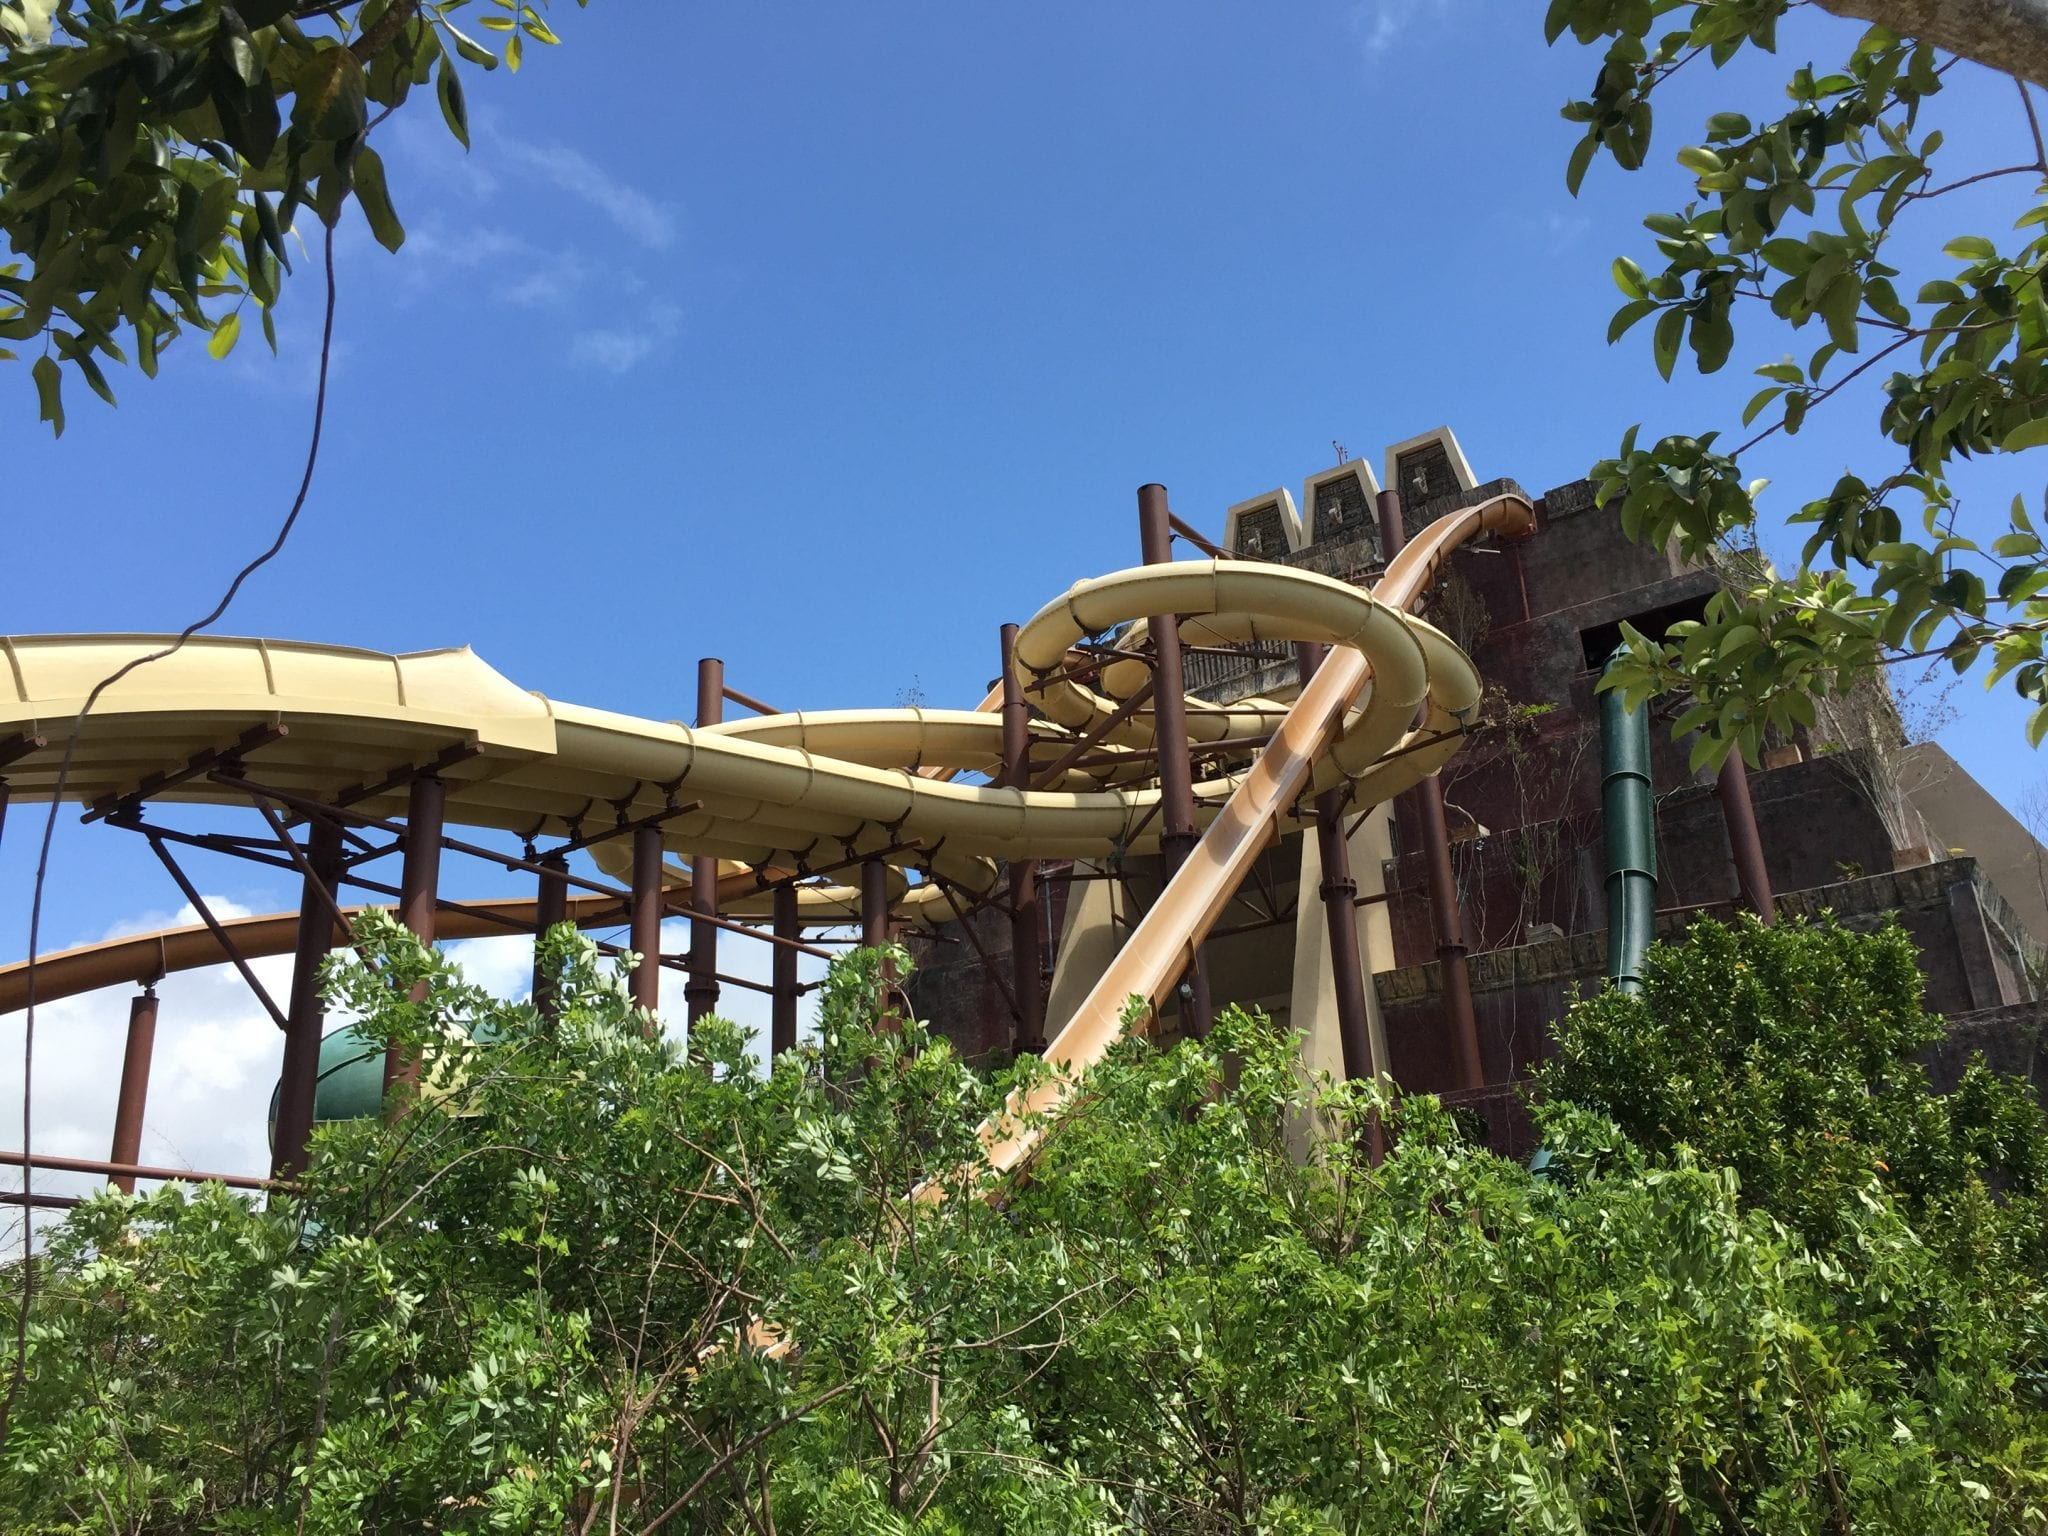 Maya Park One Of The Best Waterparks Amp Cruise Excursions